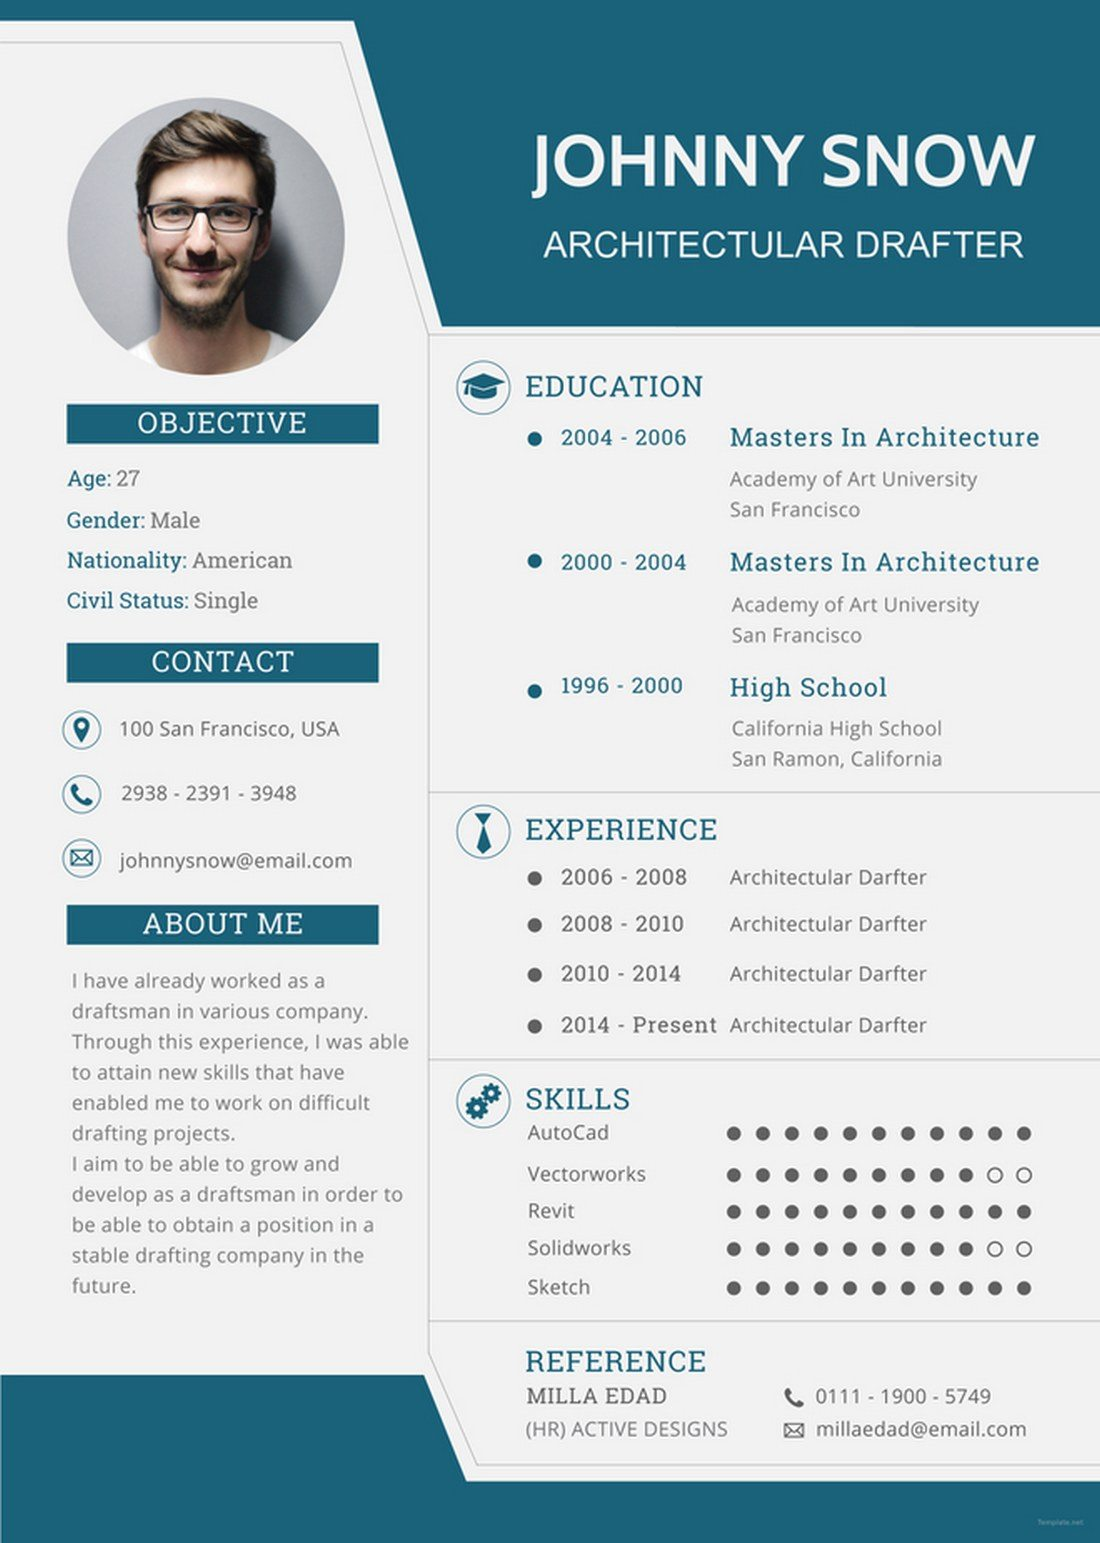 best resume cv templates design shack one template with photo free draftsman sample Resume One Page Resume Template With Photo Free Download